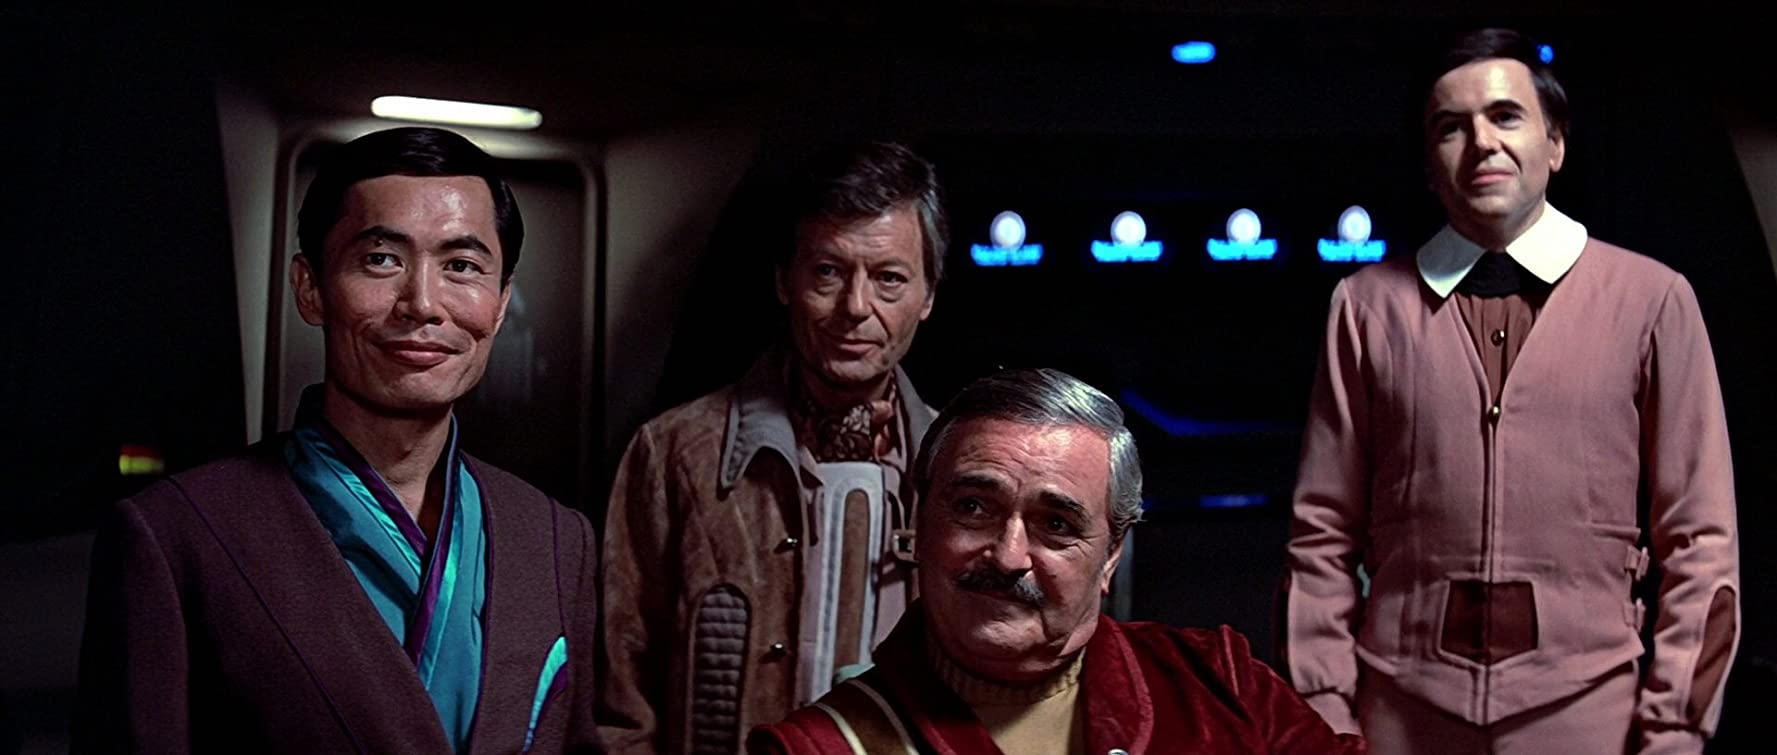 Walter Koenig, James Doohan, DeForest Kelley, and George Takei in Star Trek III: The Search for Spock (1984)